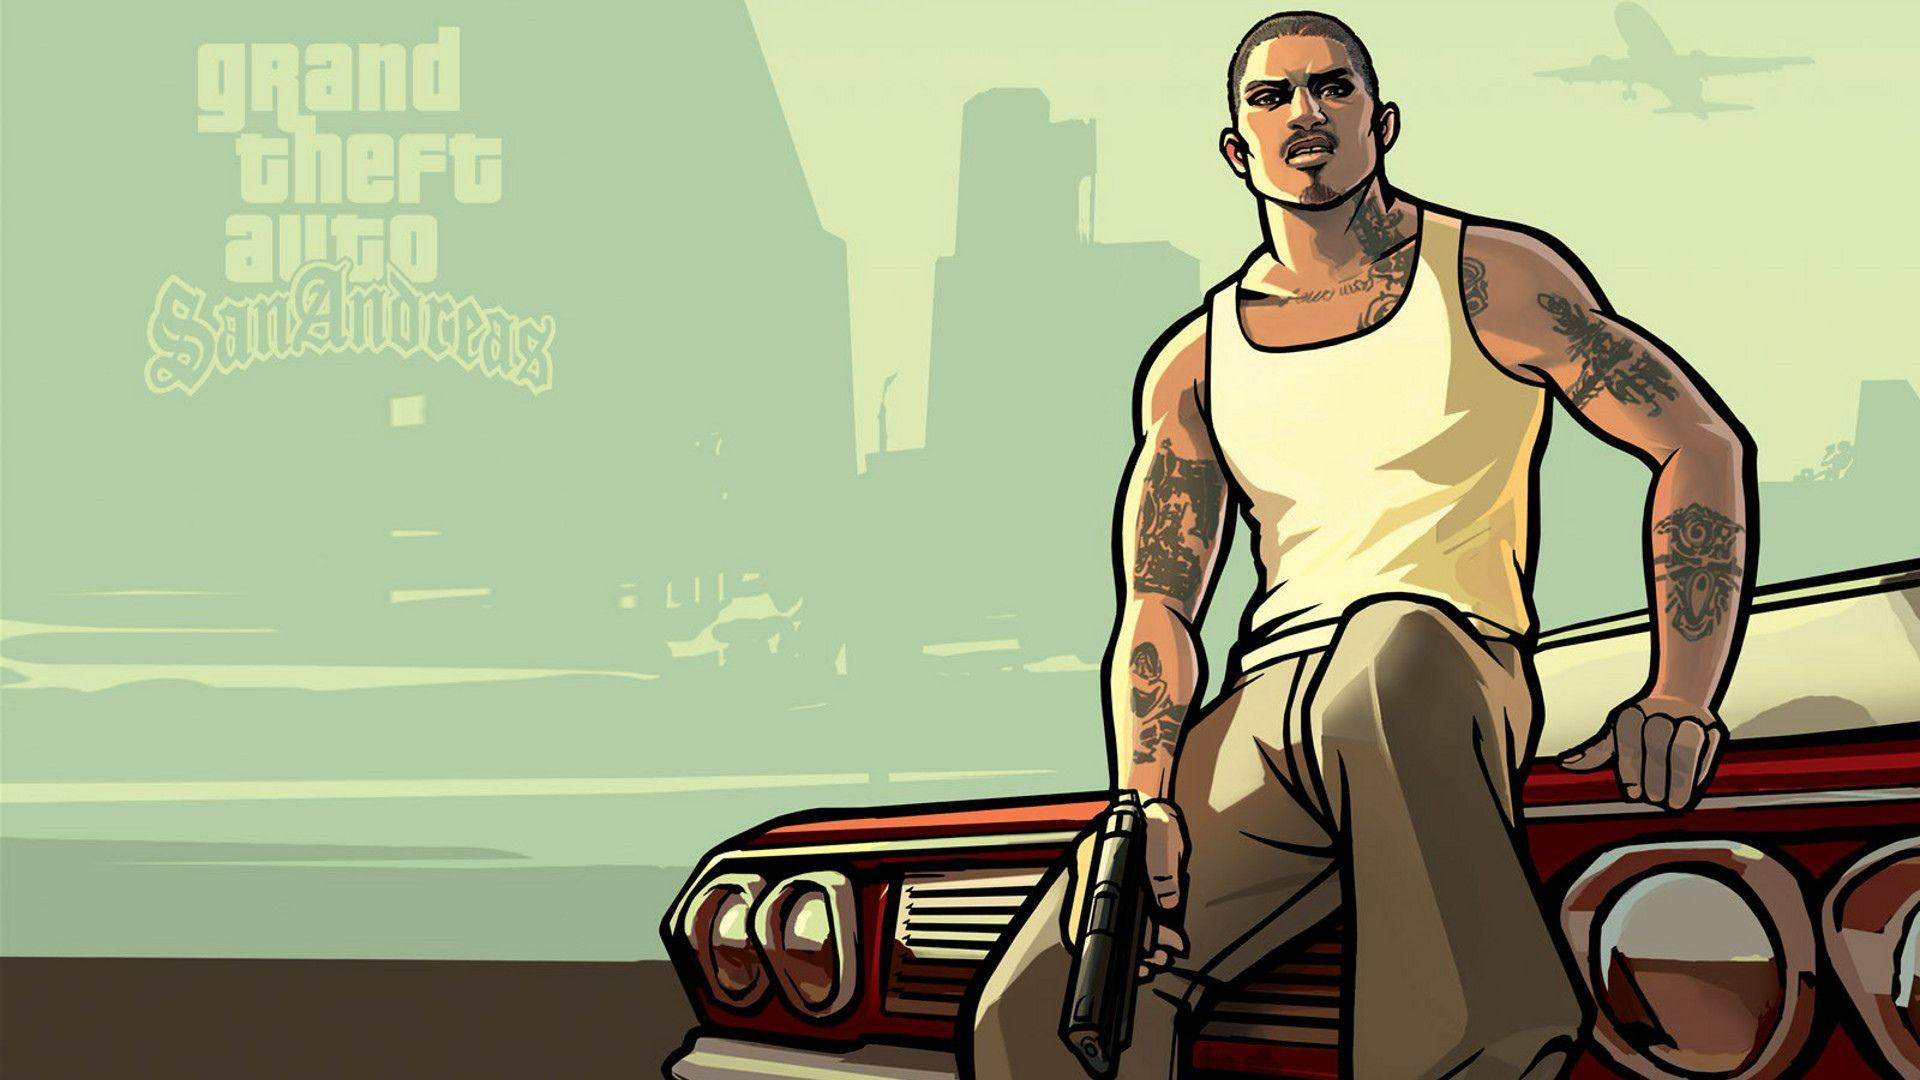 13 Grand Theft Auto San Andreas Hd Wallpapers Backgrounds